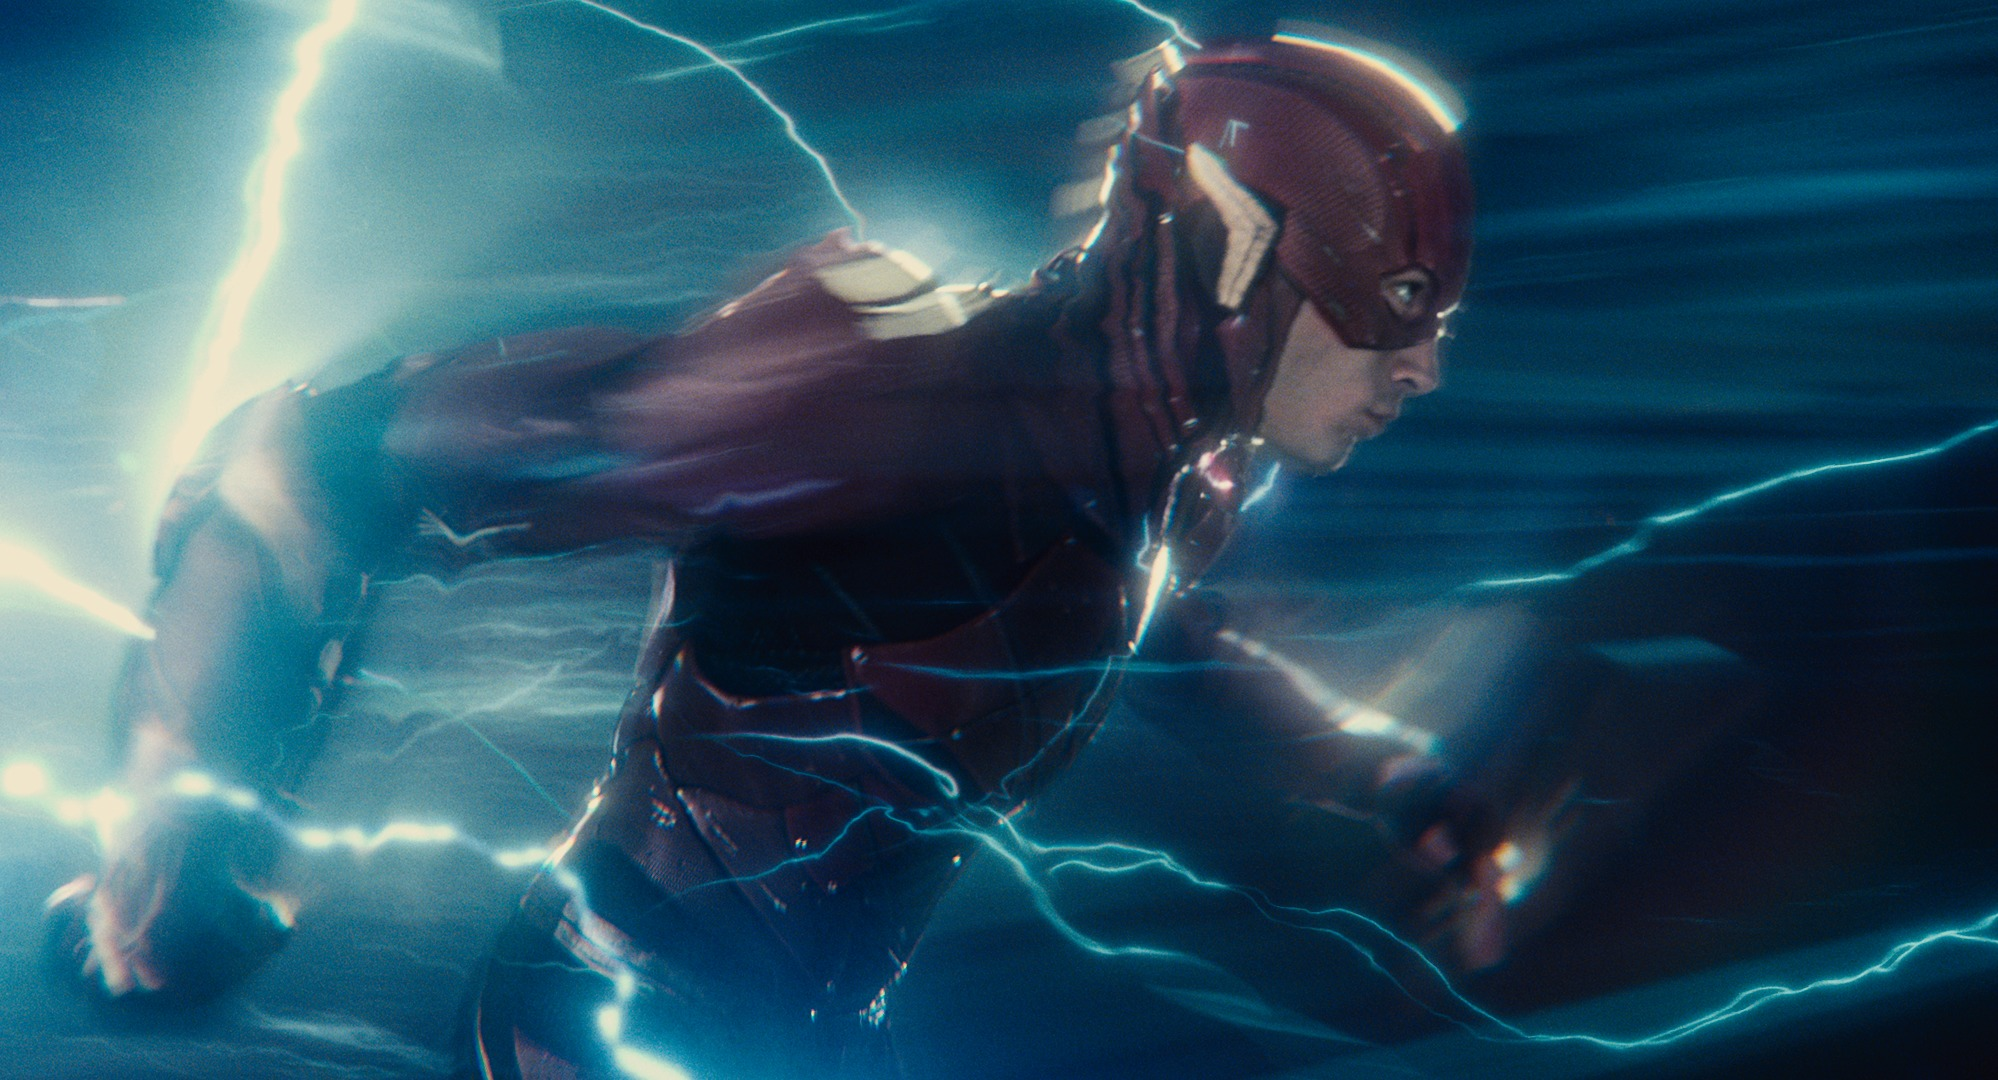 Ezra Miller as The Flash in 'Justice League'